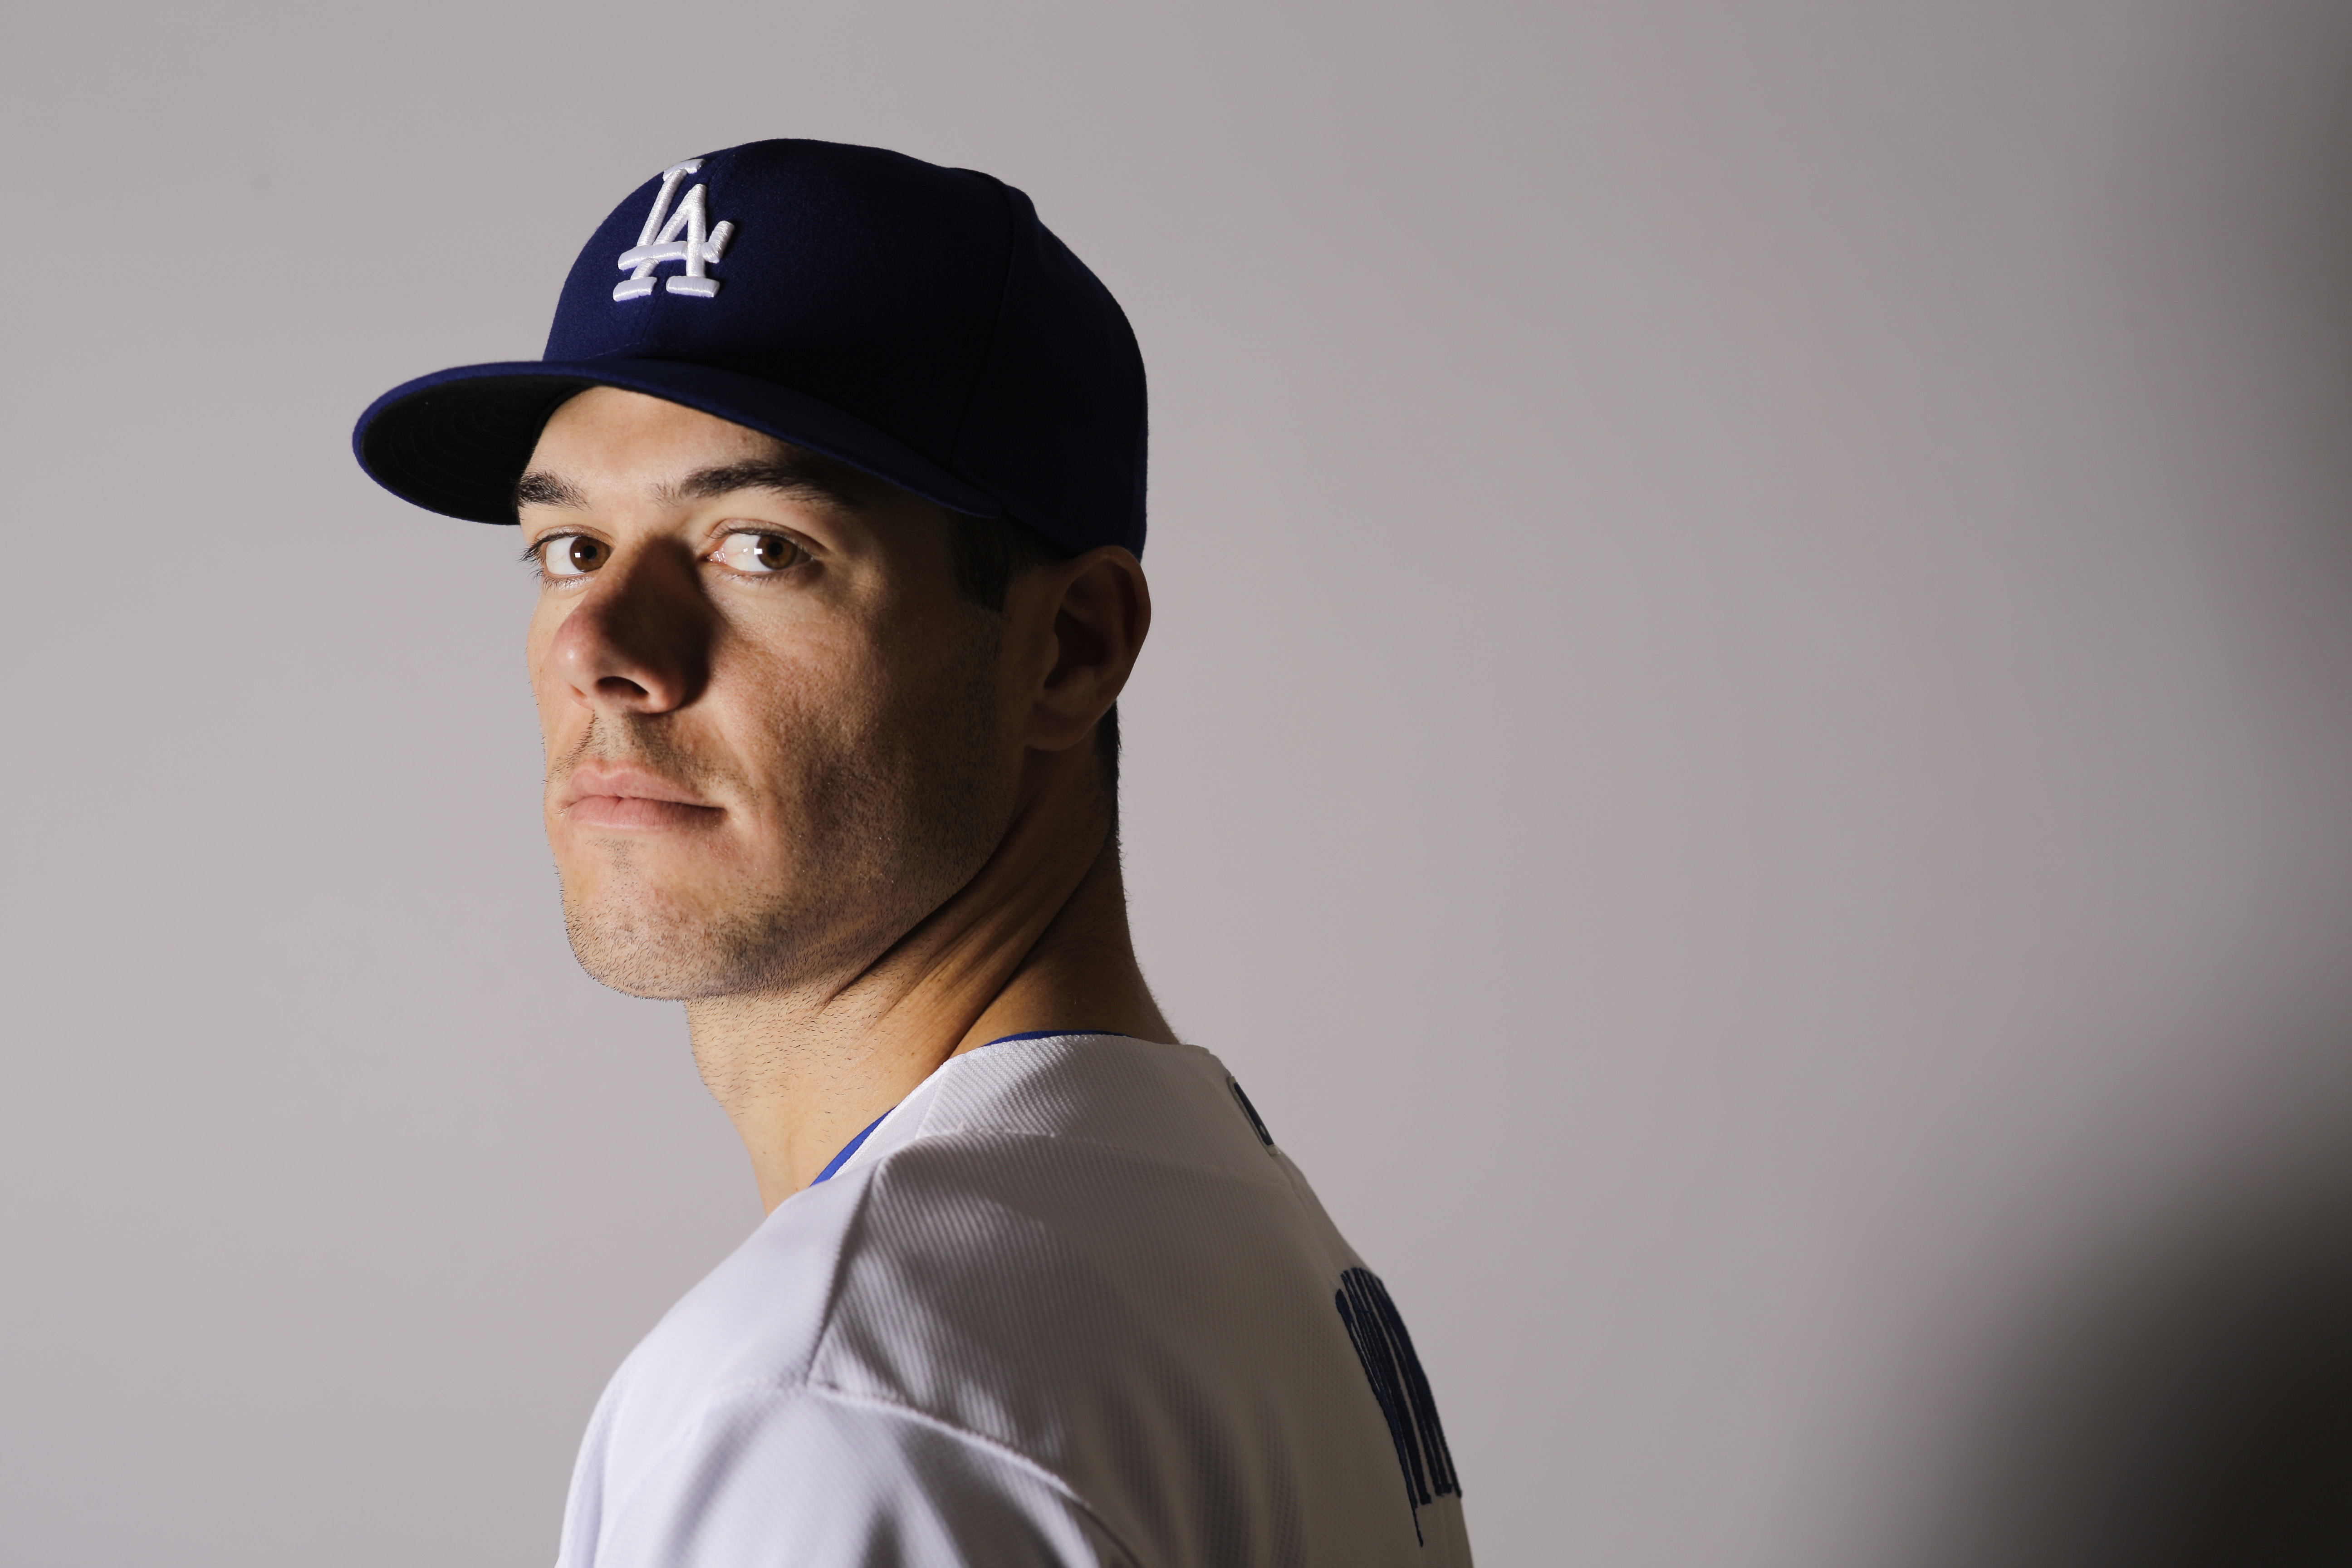 This Saturday, Feb. 27, 2016 photo shows Josh Ravin of the Los Angeles Dodgers baseball team. Ravin has been suspended for 80 games following a positive test under Major League Baseball's drug program. He tested positive for Growth Hormone Releasing Pepti